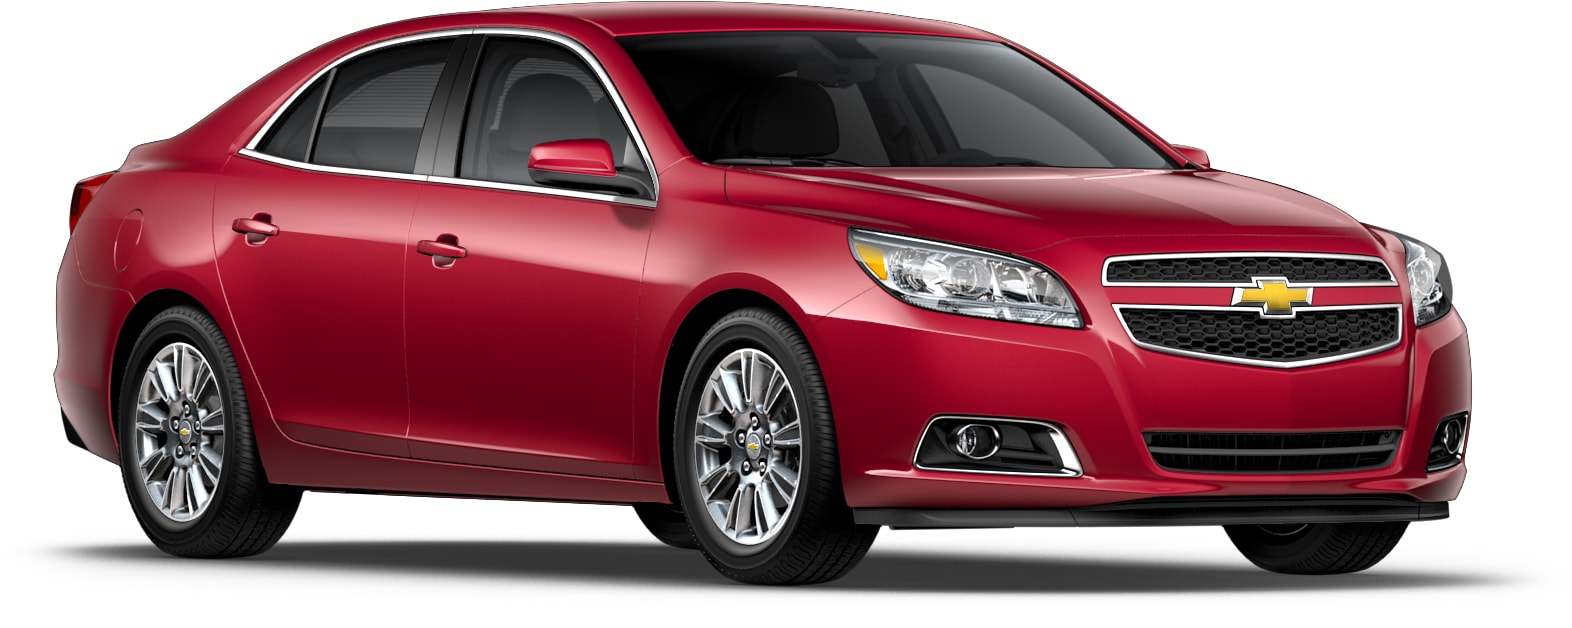 how to open gas tank on chevy malibu 2014 autos post. Black Bedroom Furniture Sets. Home Design Ideas